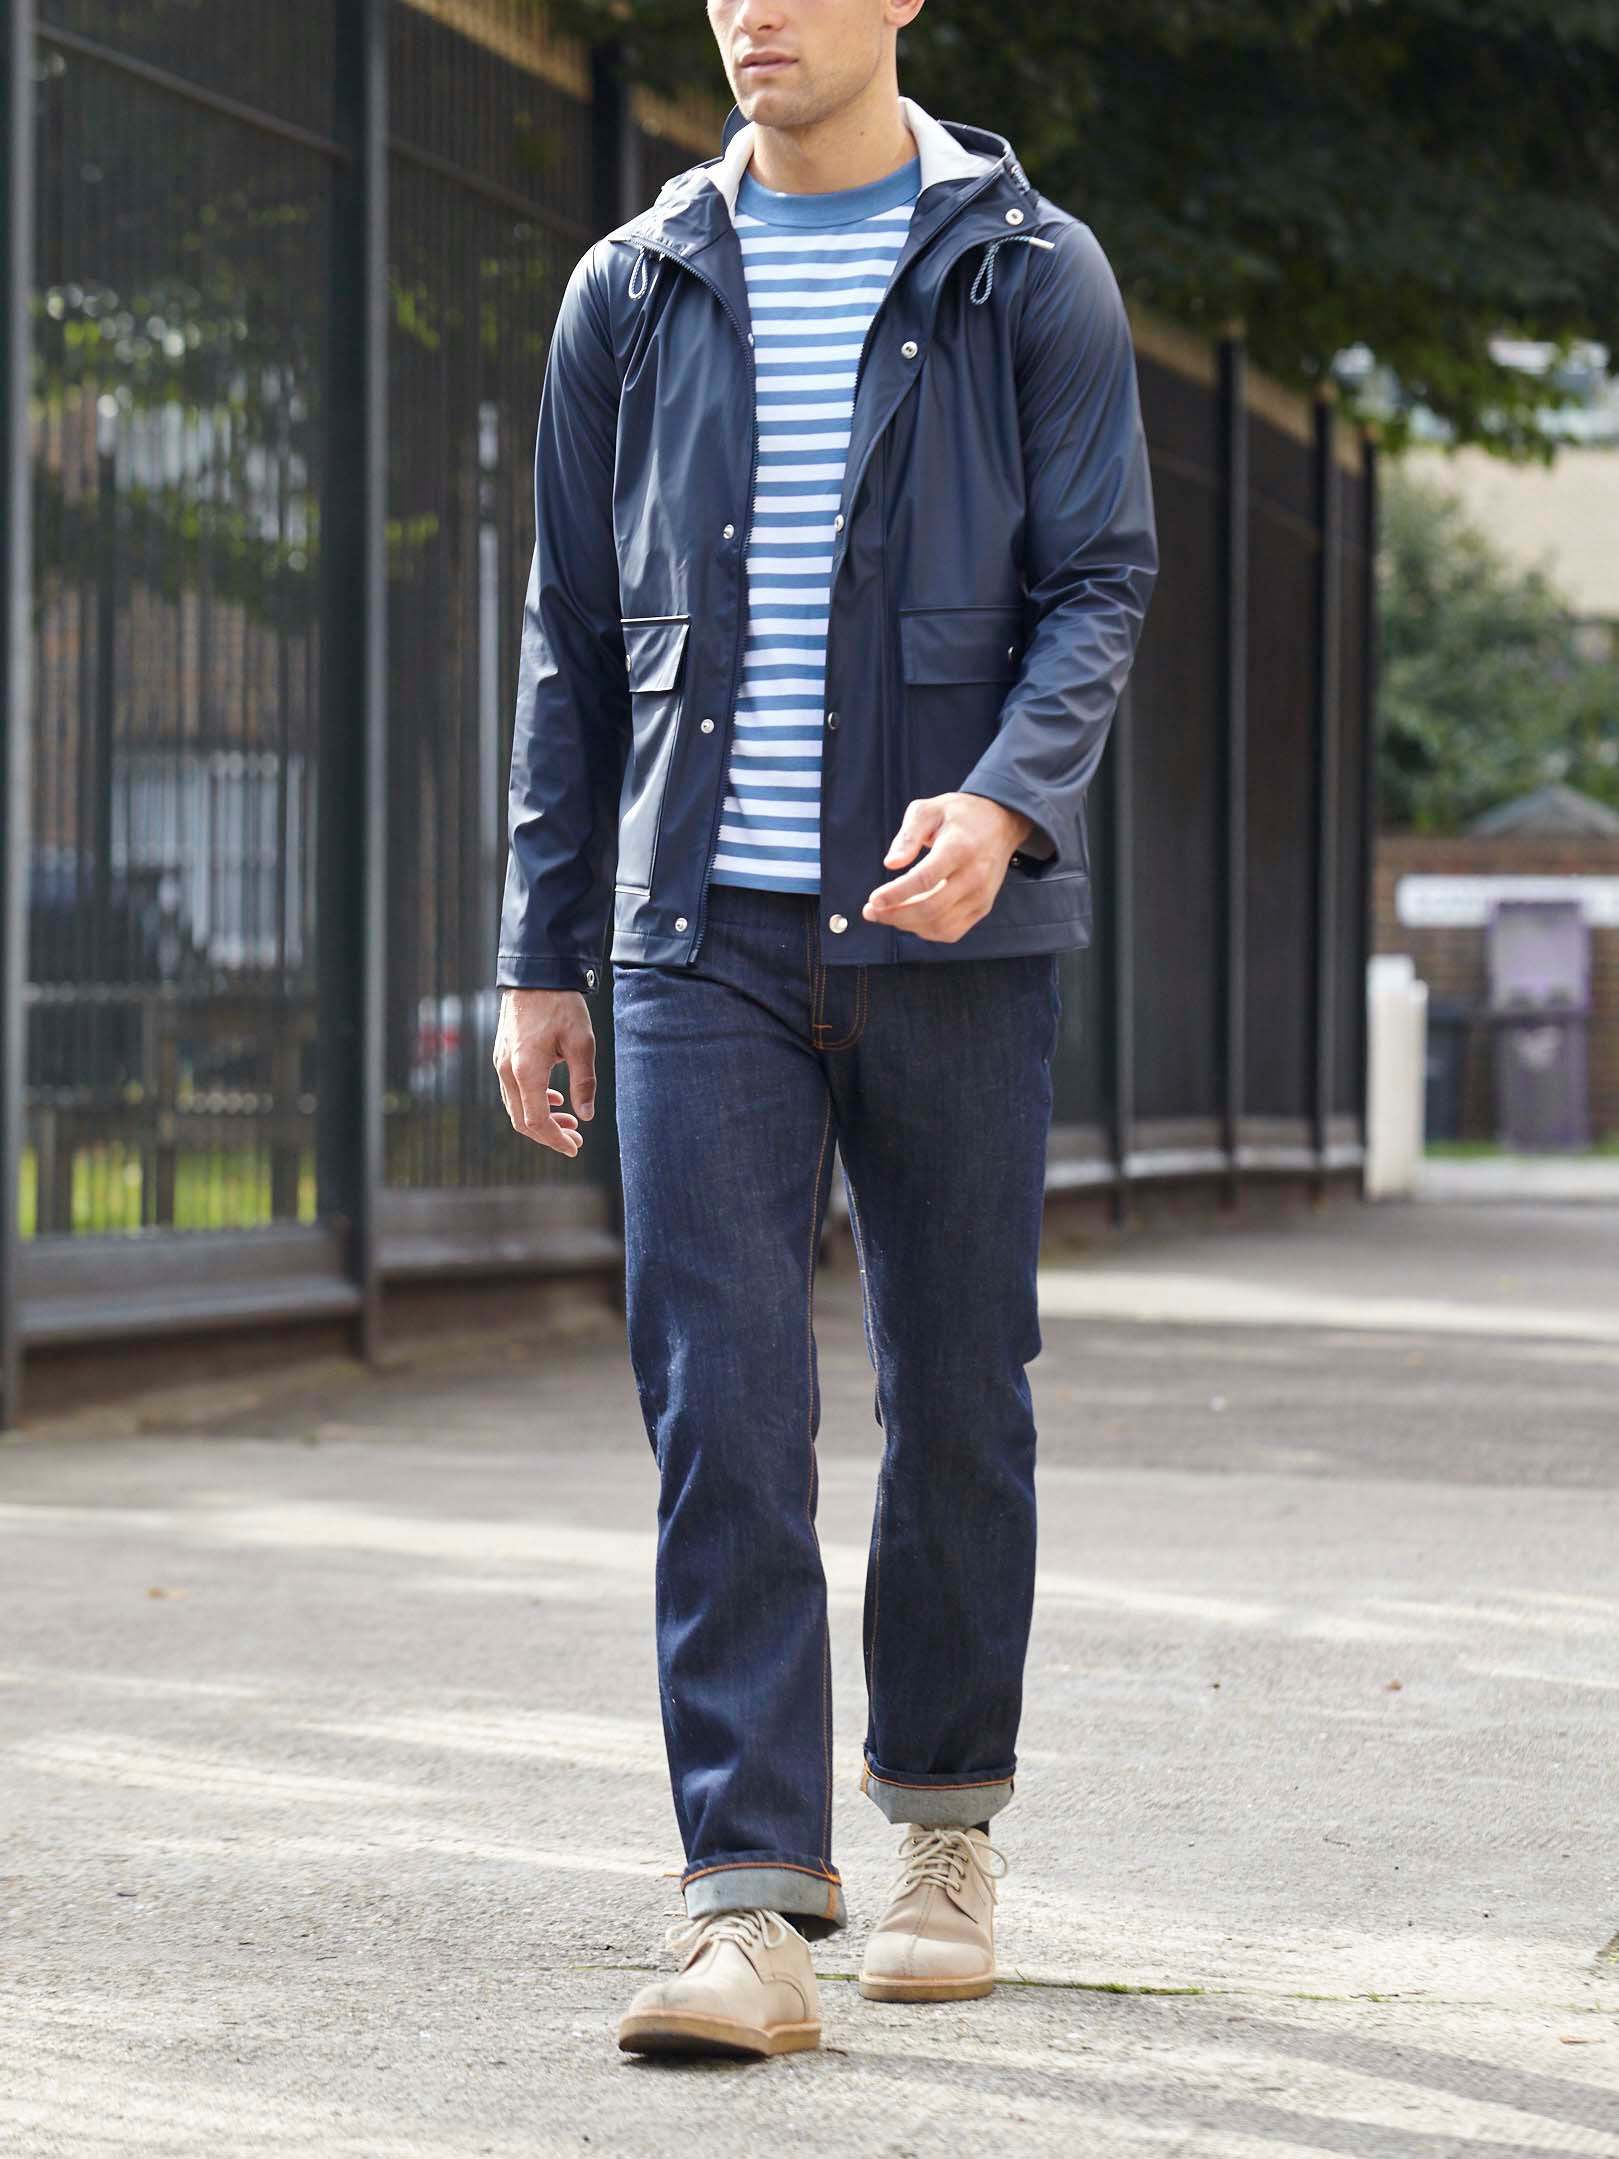 Men's outfit idea for 2021 with navy raincoat, blue striped crew neck t-shirt, dark blue jeans, moccasins / wallabees. Suitable for spring and fall.